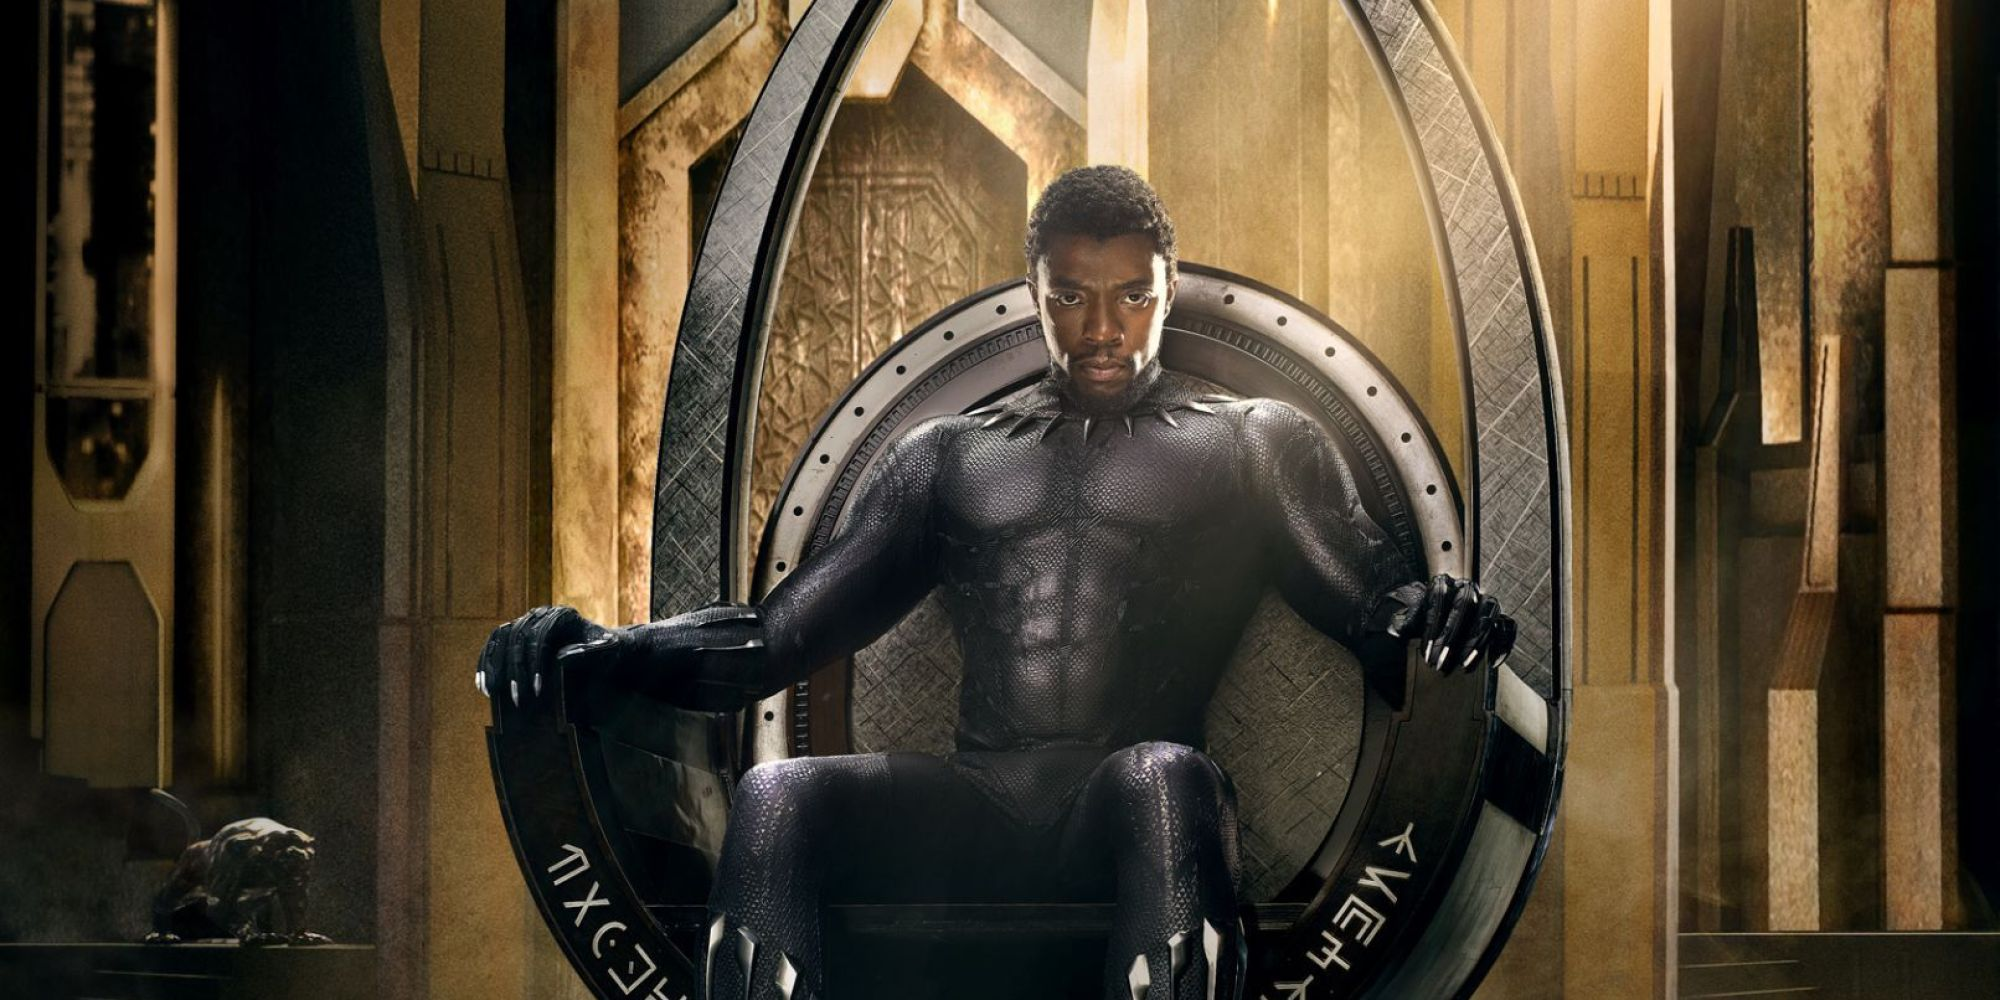 Black Panther post credits scenes, black panther, spoilers, marvel, avengers: infinity war, ending credits